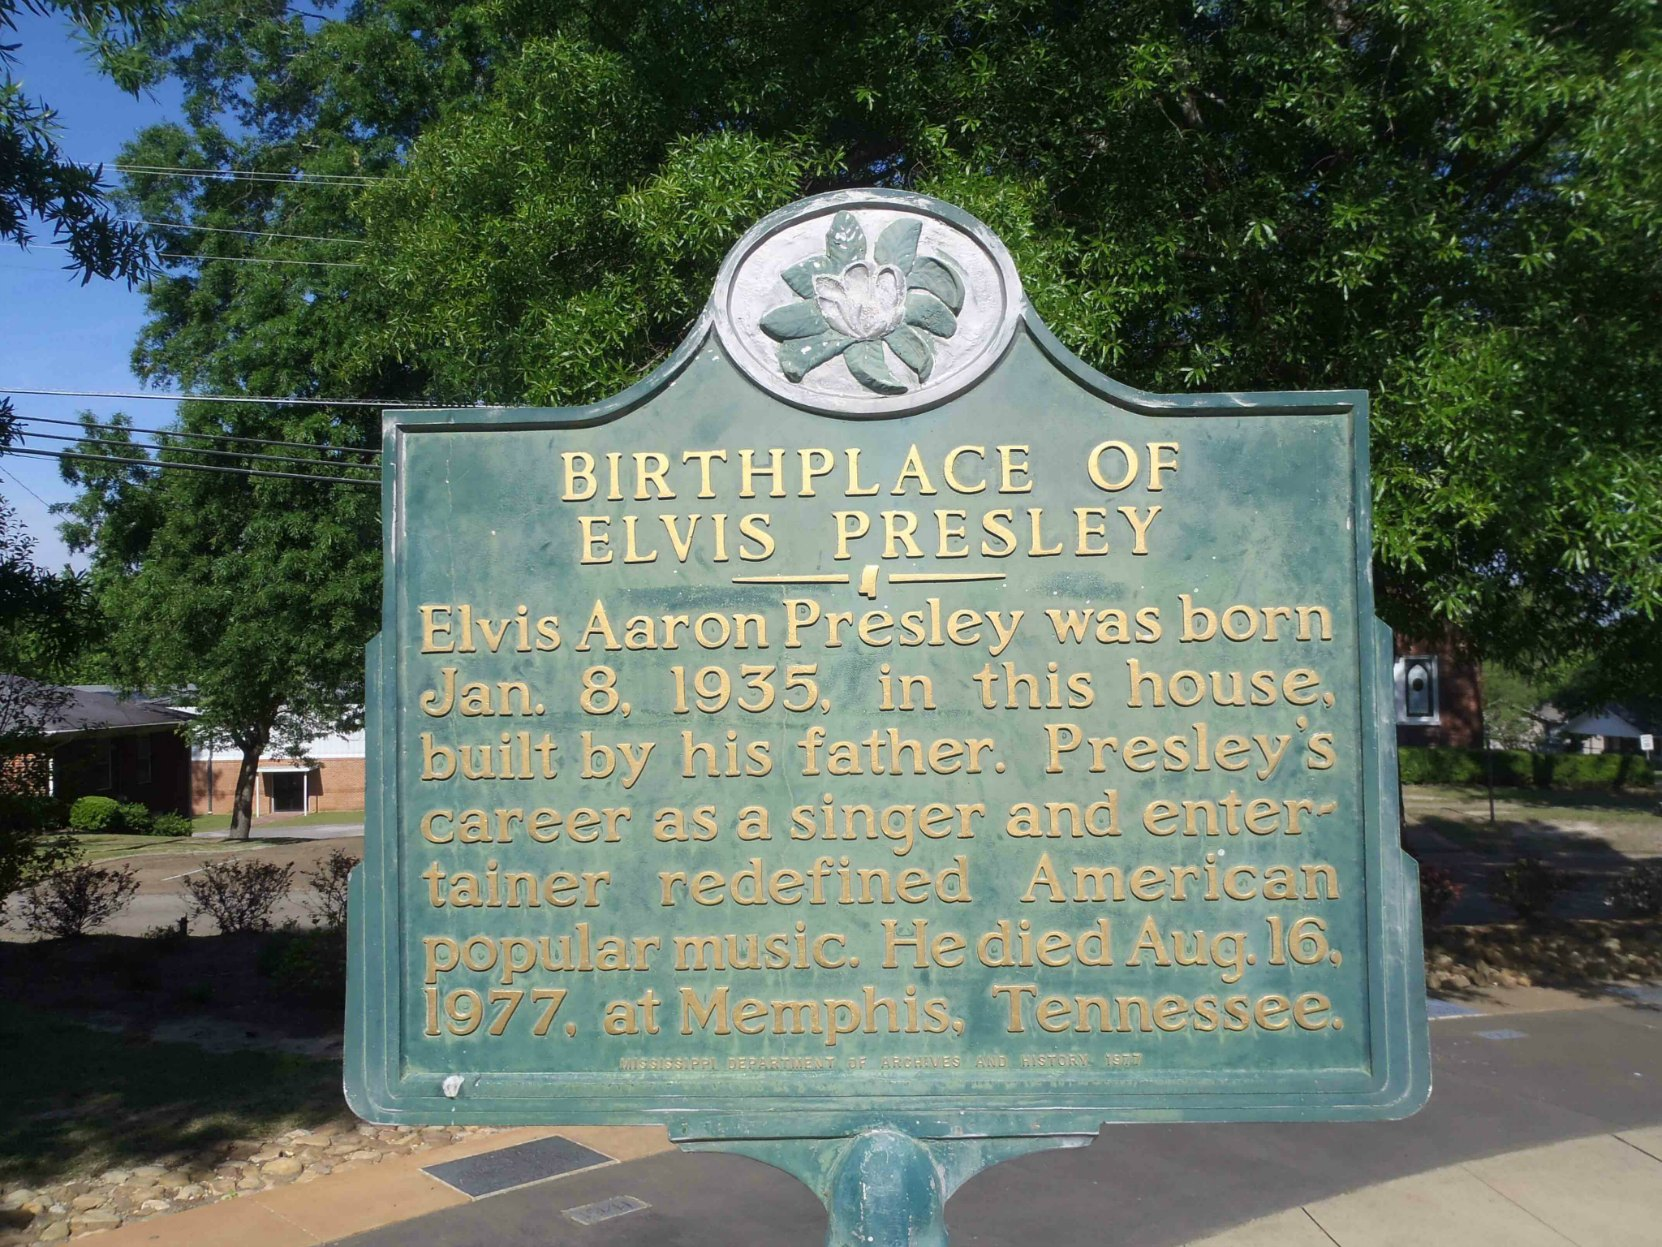 Mississippi Department of Archives & History marker for Birthplace of Elvis Presley, Elvis Presley Birthplace Museum, Tupelo, Mississippi